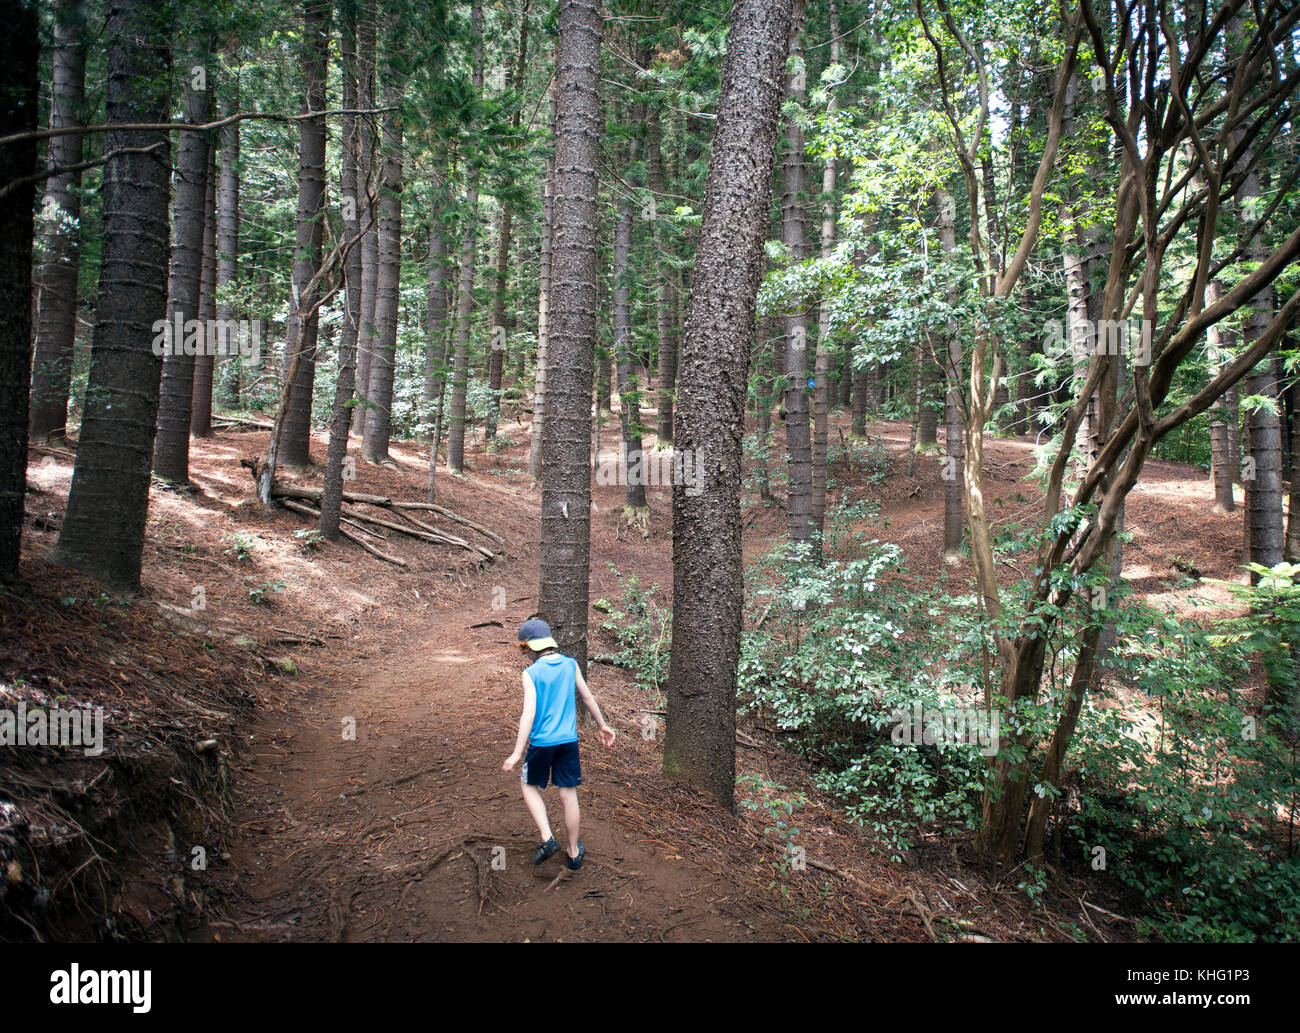 Boy walking through Cook Pines in Nounou Forest - Stock Image